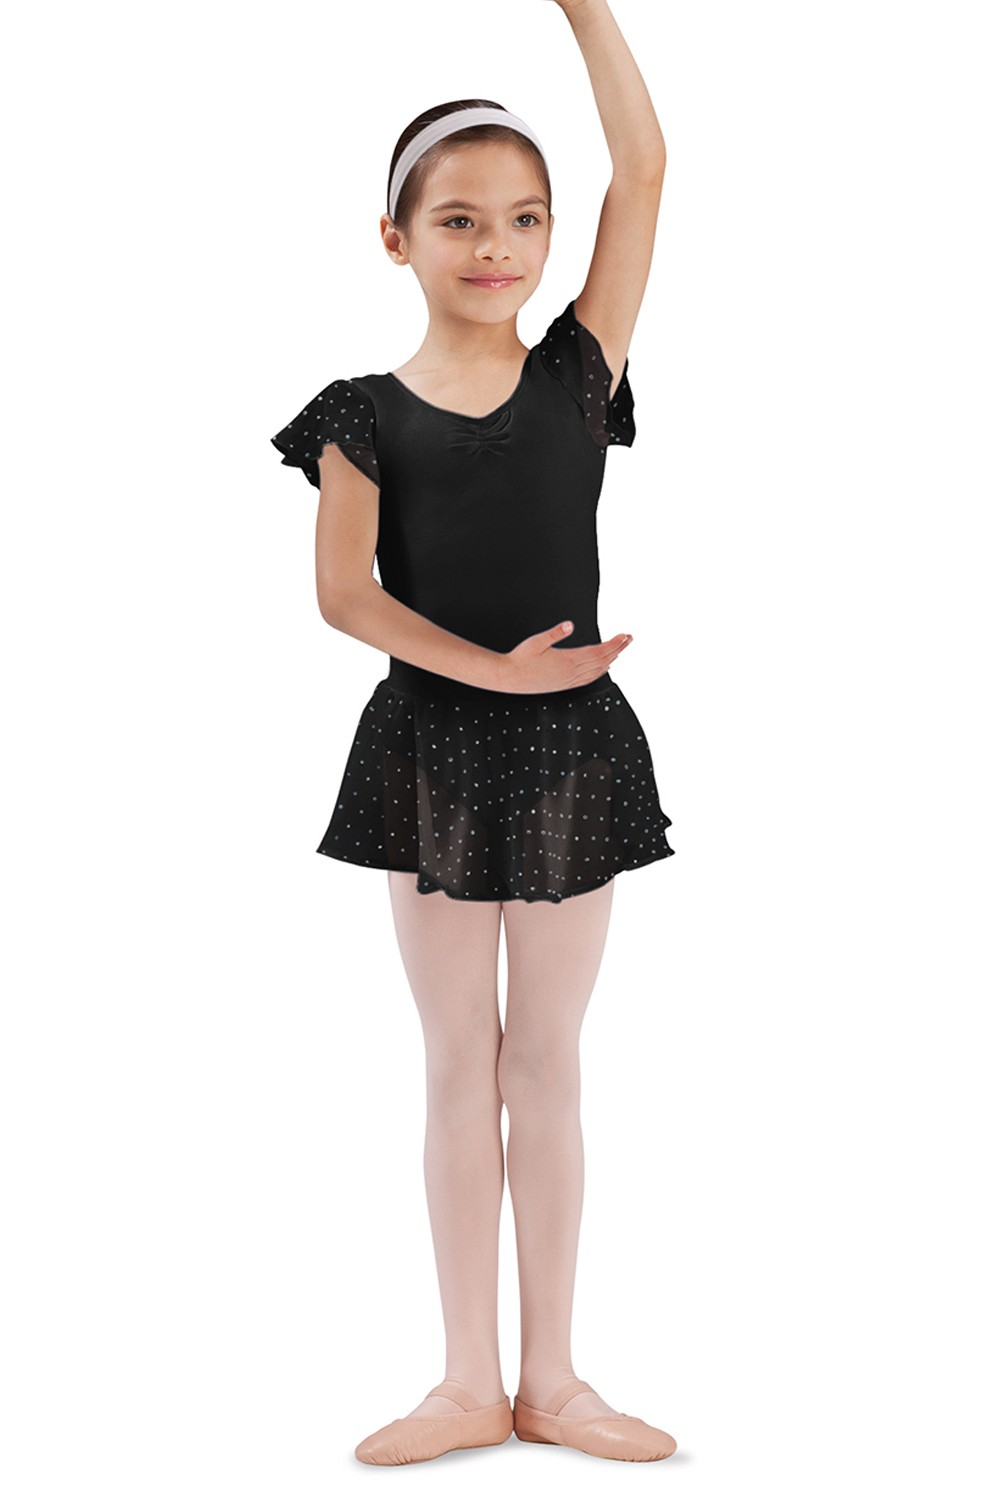 Olesia Children's Dance Skirts